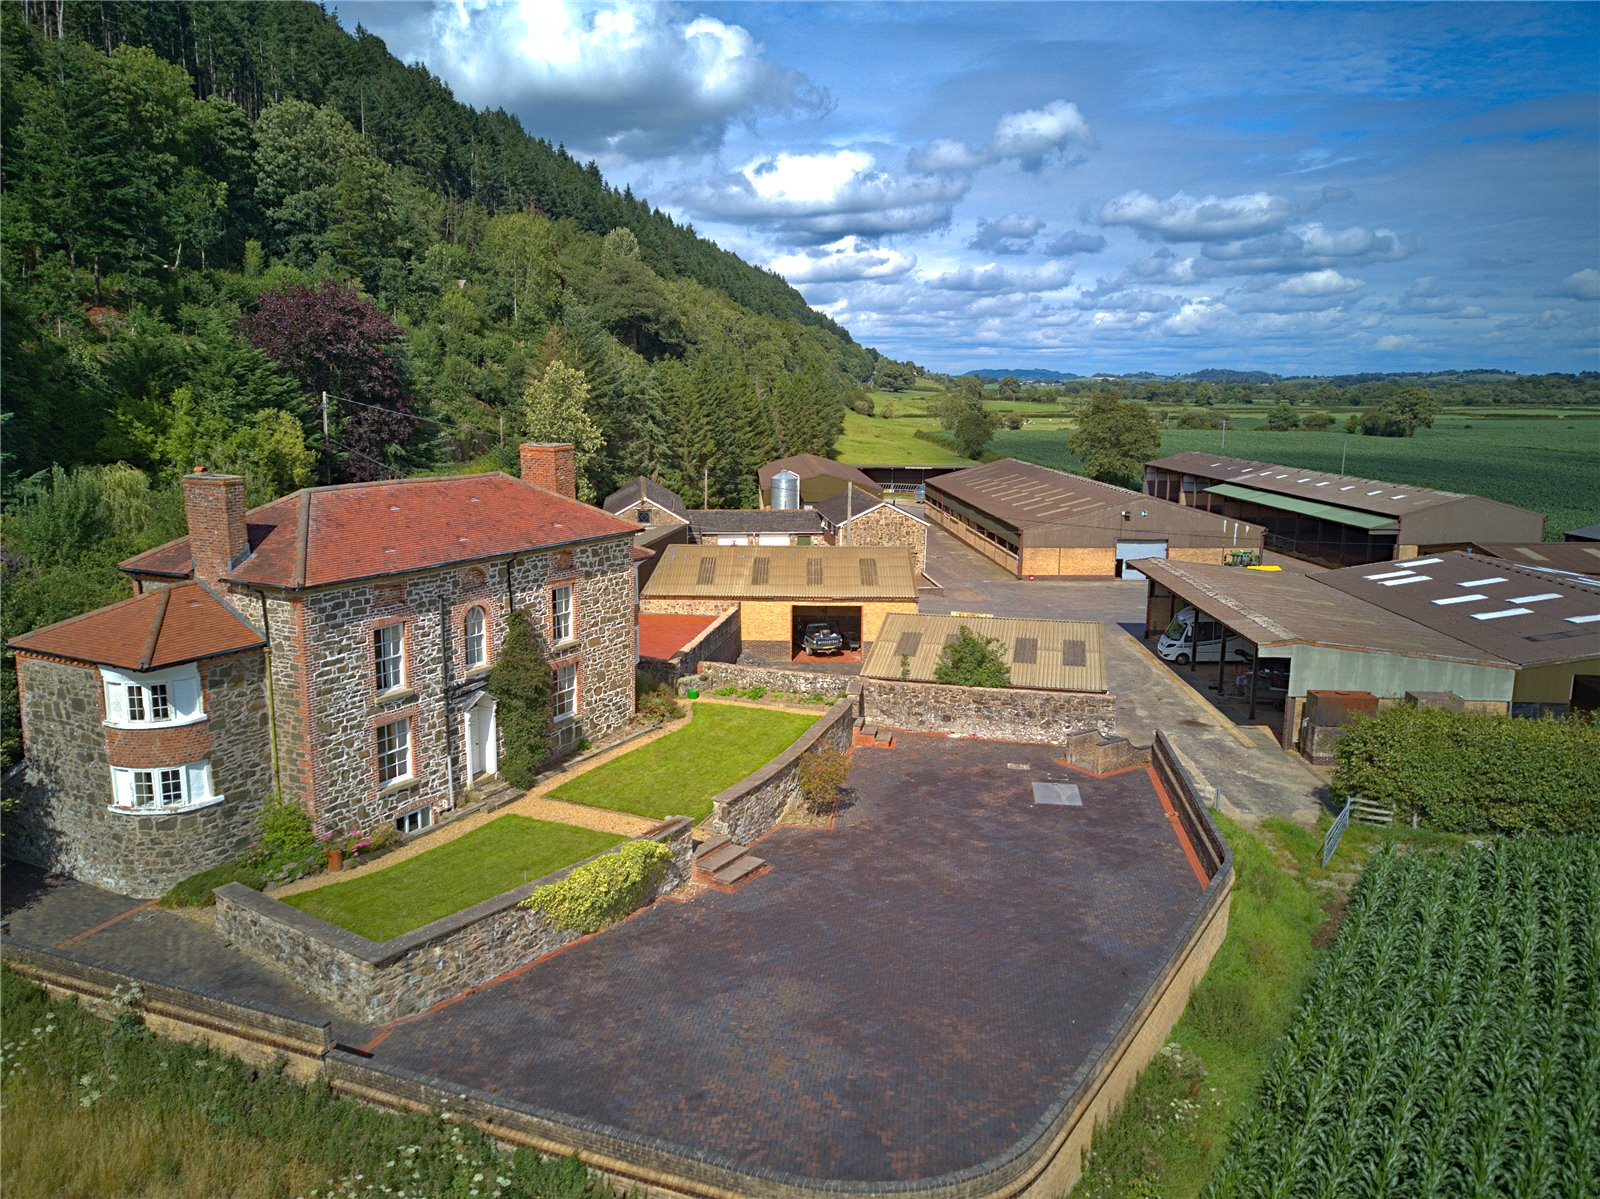 Welsh stone built farmhouse in rural countryside with woodland